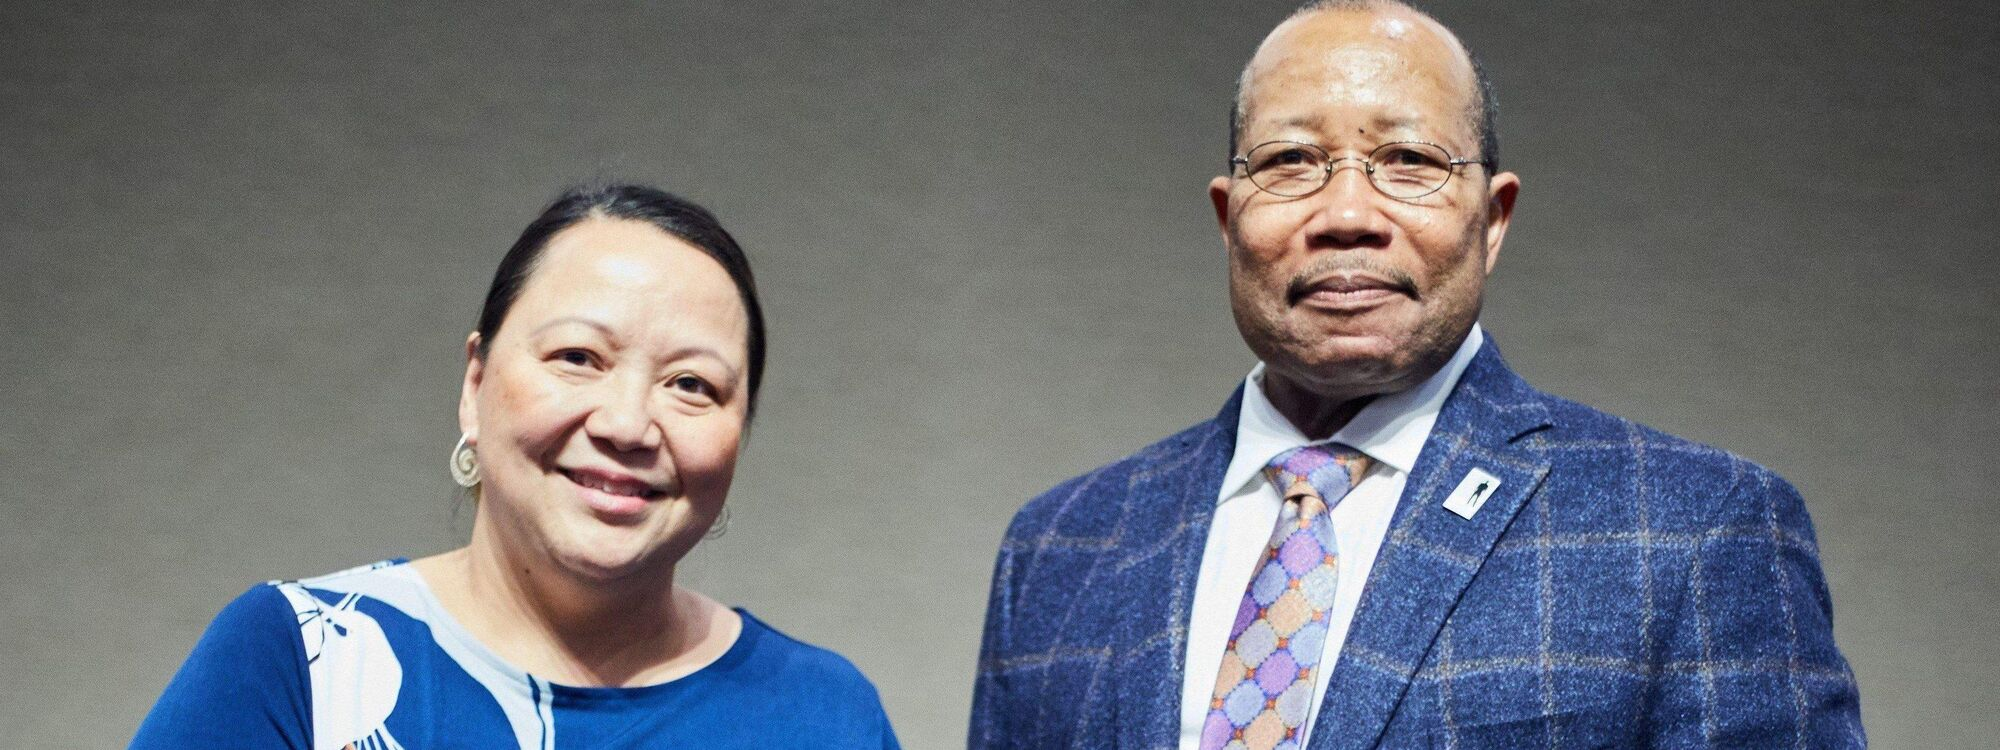 Past Facing Race Award Recipients Bo Thao-Urabe and Otis Zanders